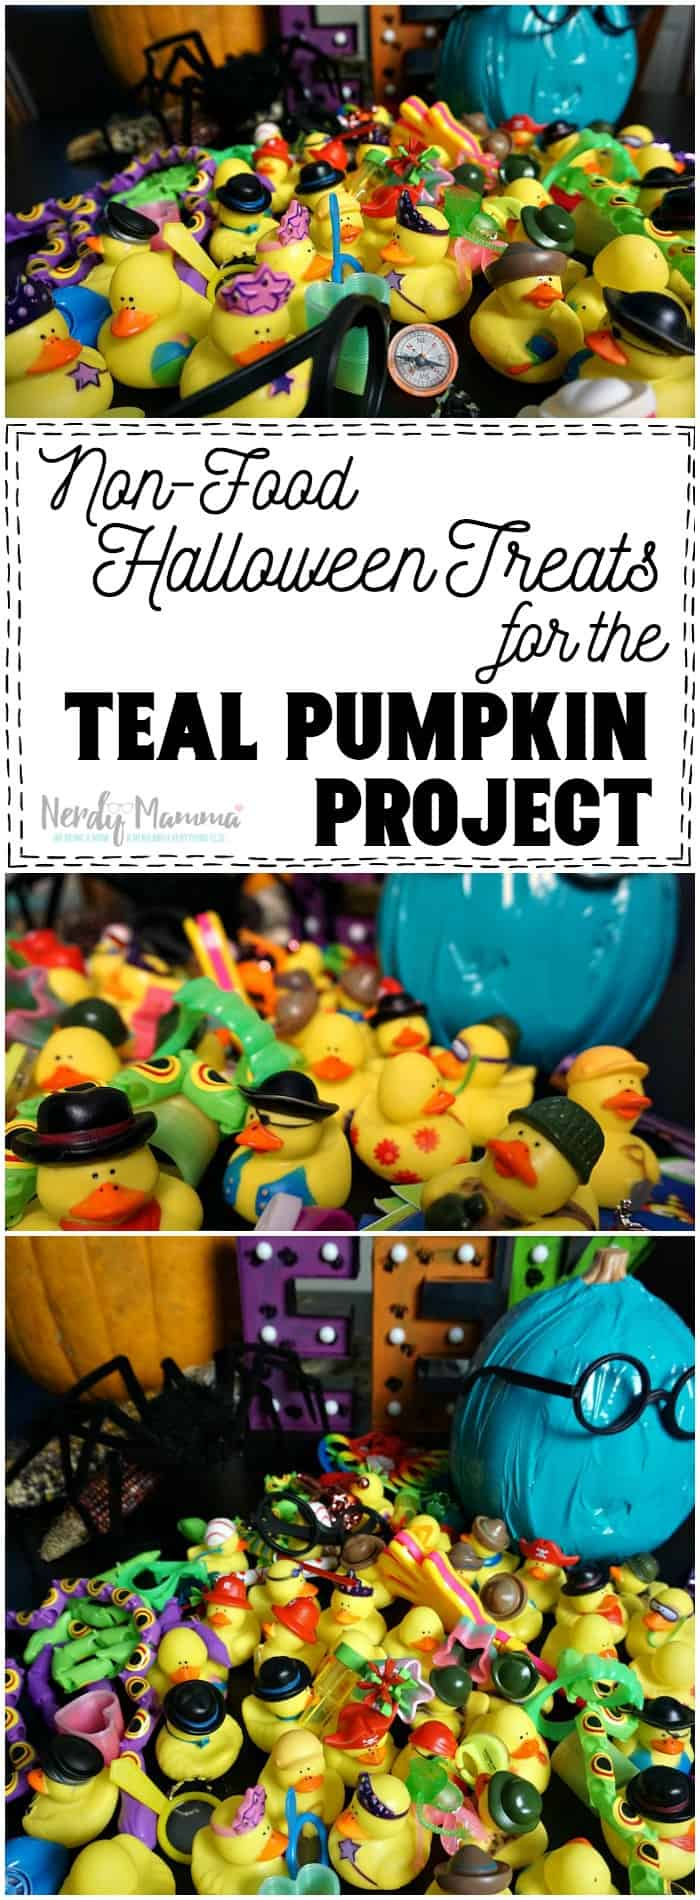 Oooooh! This is such an awesome idea list for non-food Halloween Treats for the Teal Pumpkin Project!